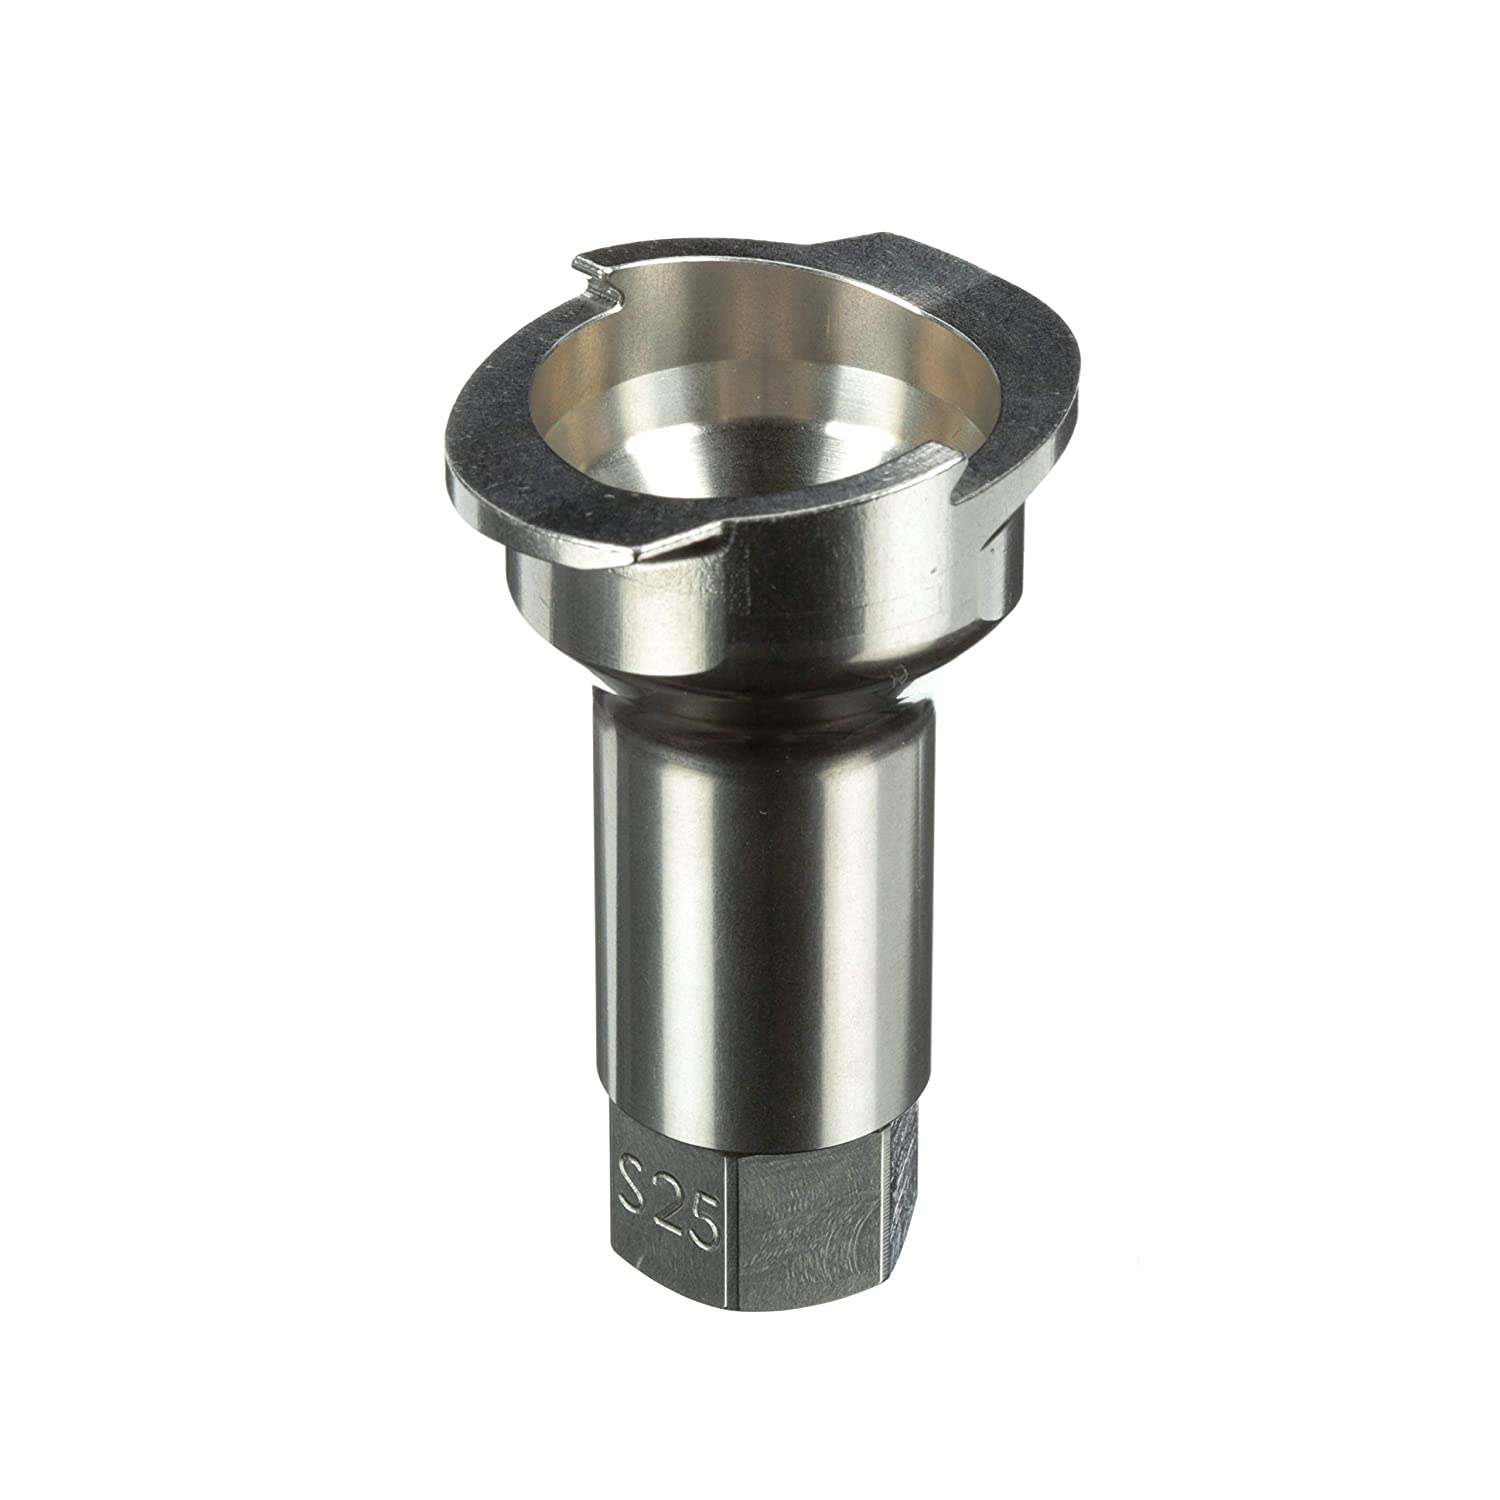 18 Thread NPS Series 2.0 Adapter PPS 26109 3M 1//4 in Female